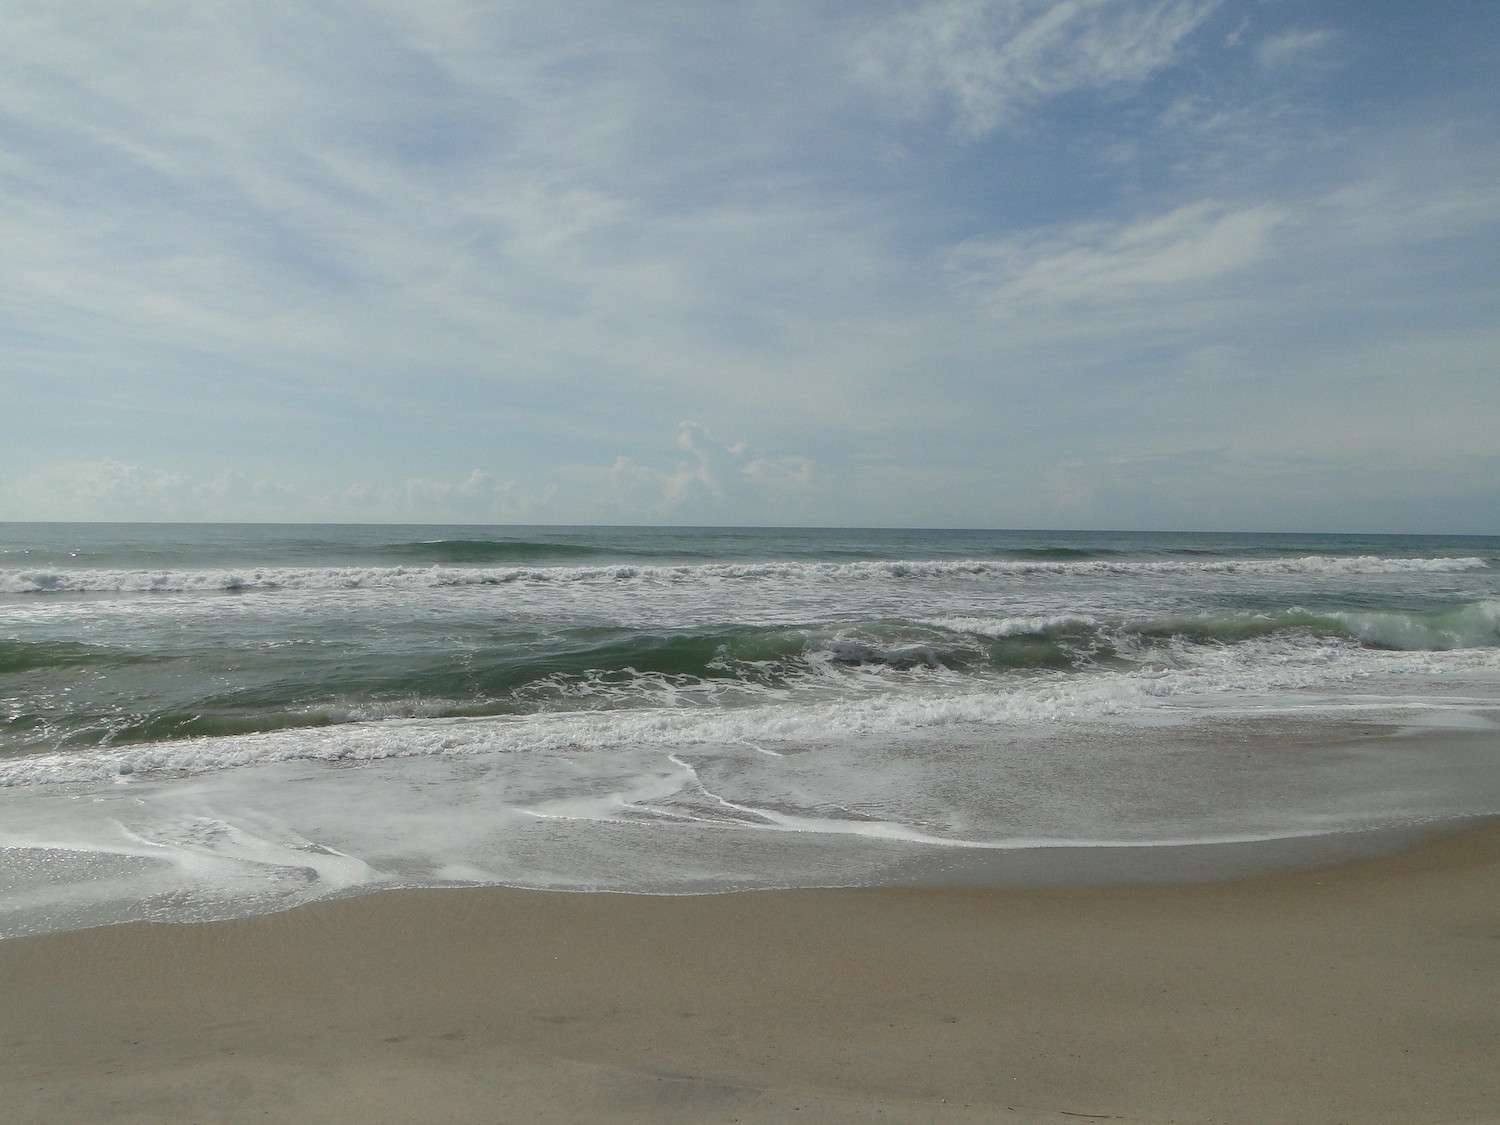 Small waves crash into the beach on Ocracoke Island on the Outerbanks in North Carolina